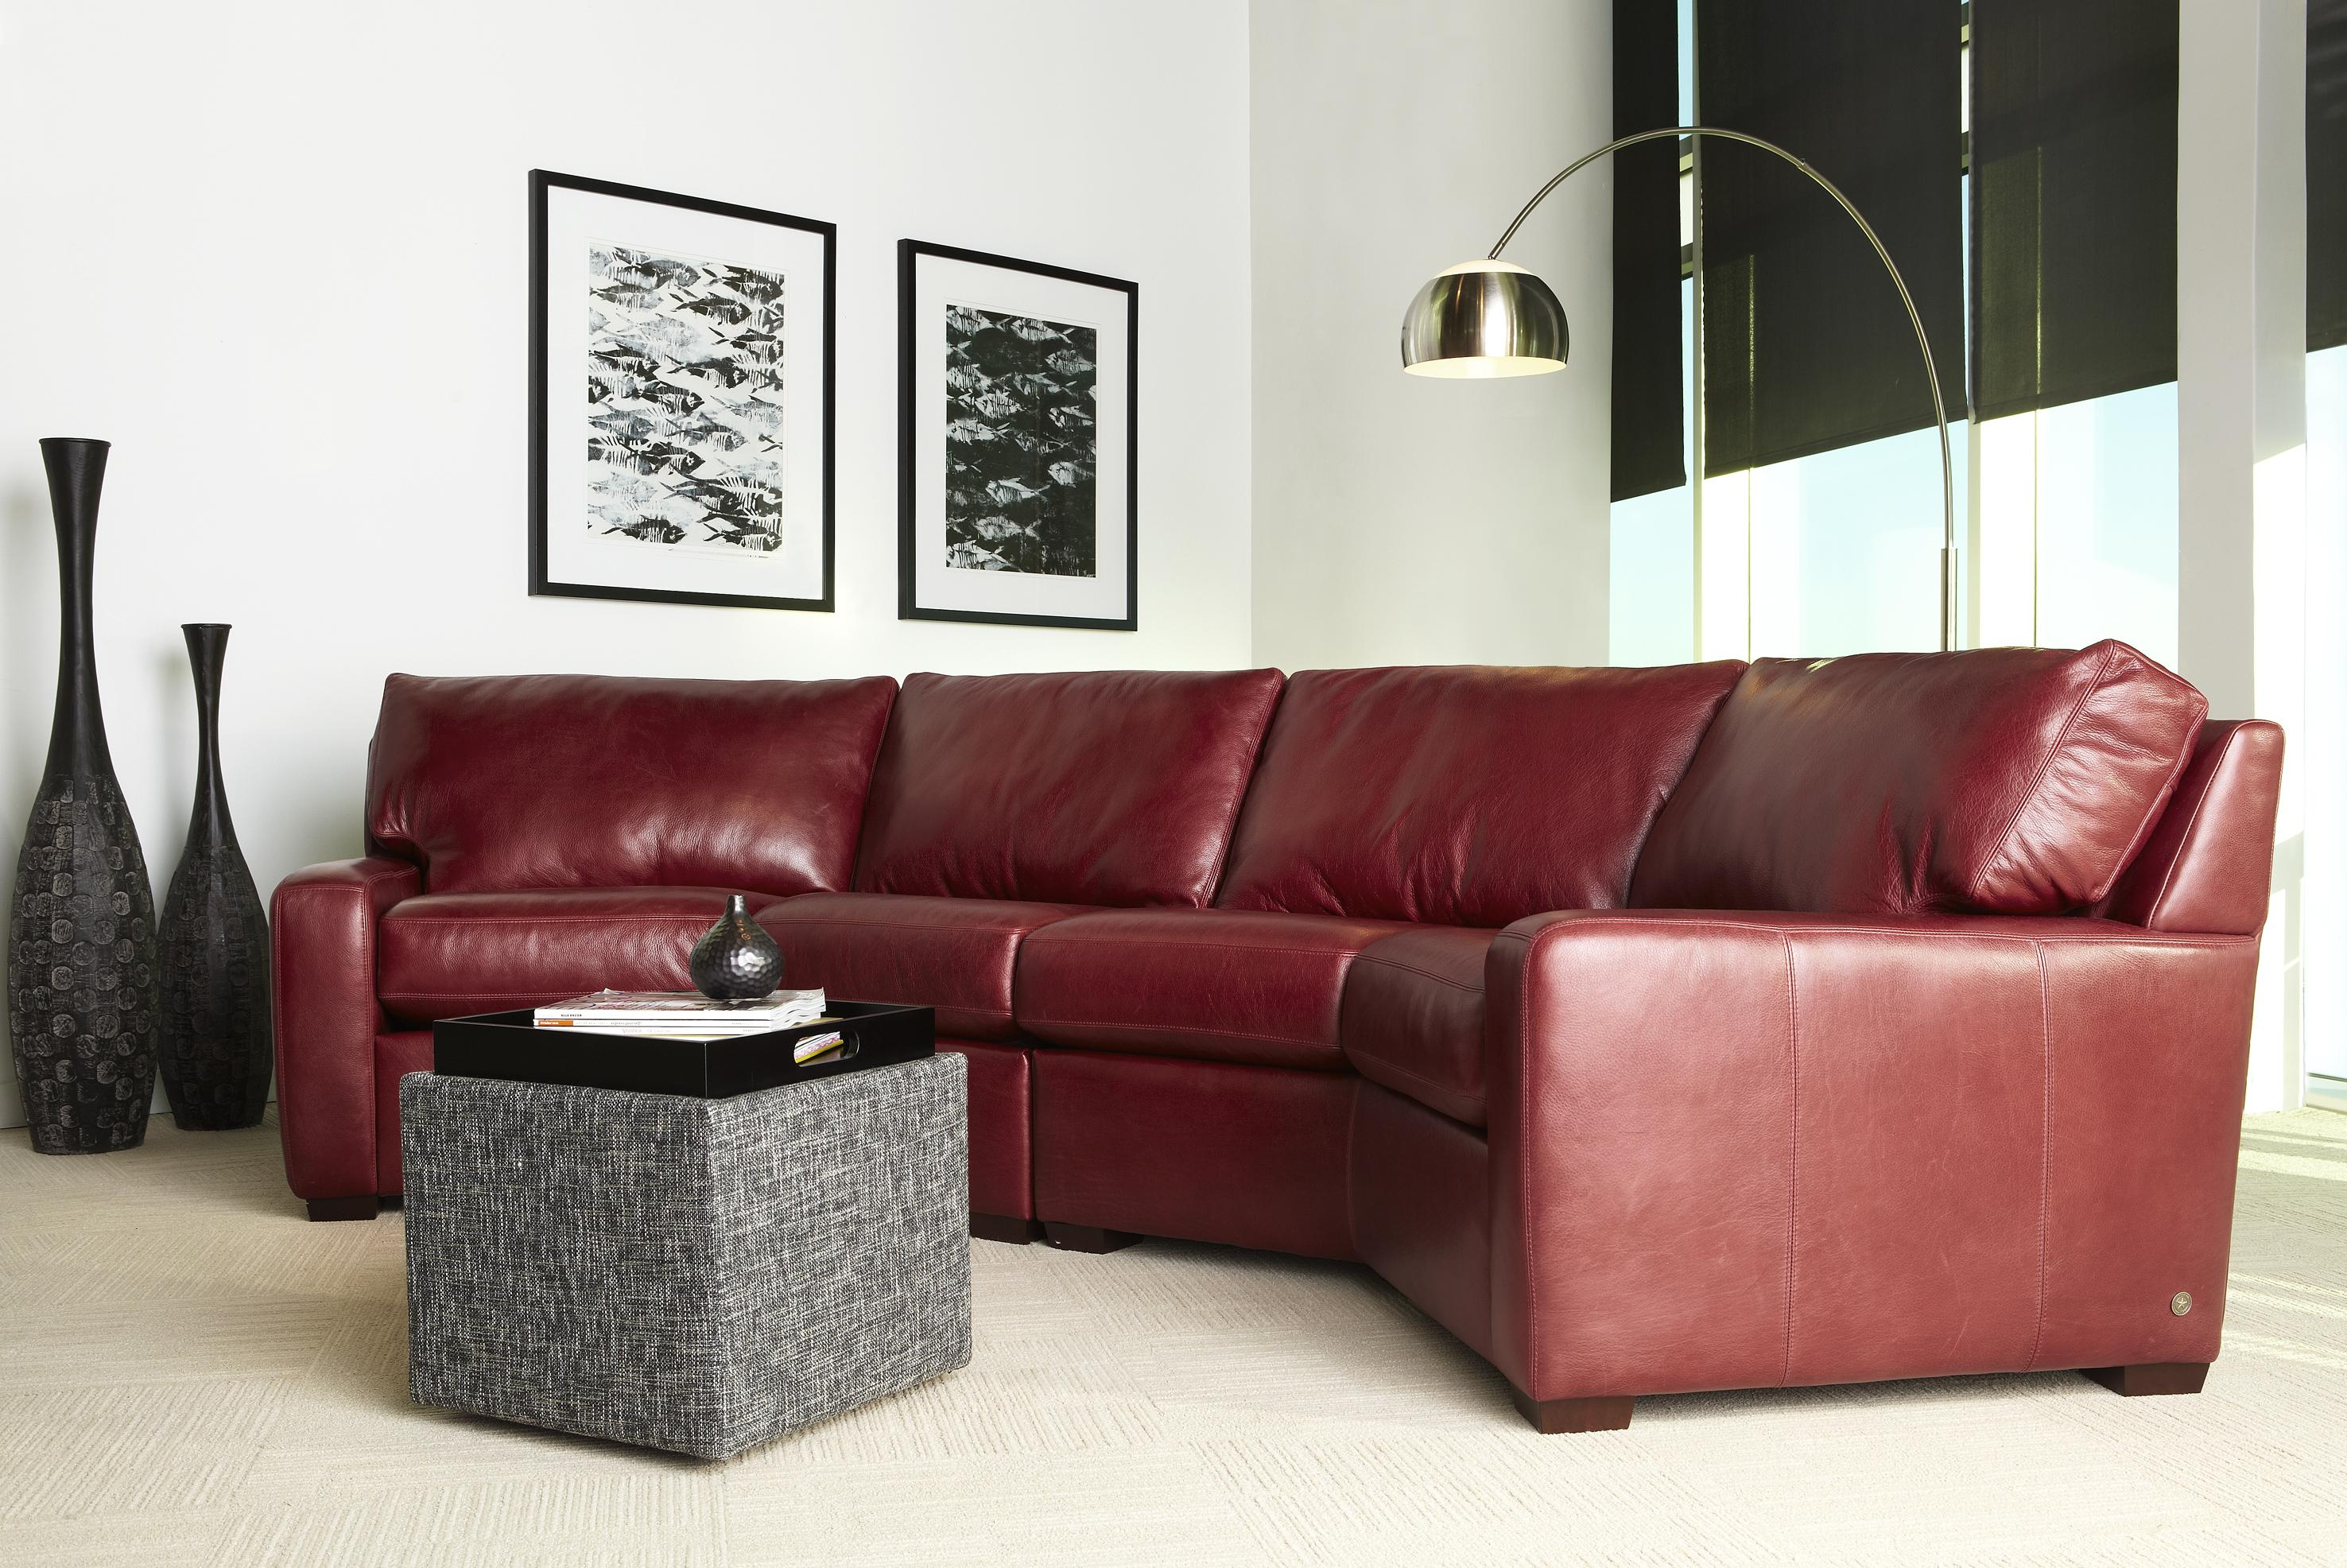 American Leather Carson Leather Sofa Sleeper Boulevard Home